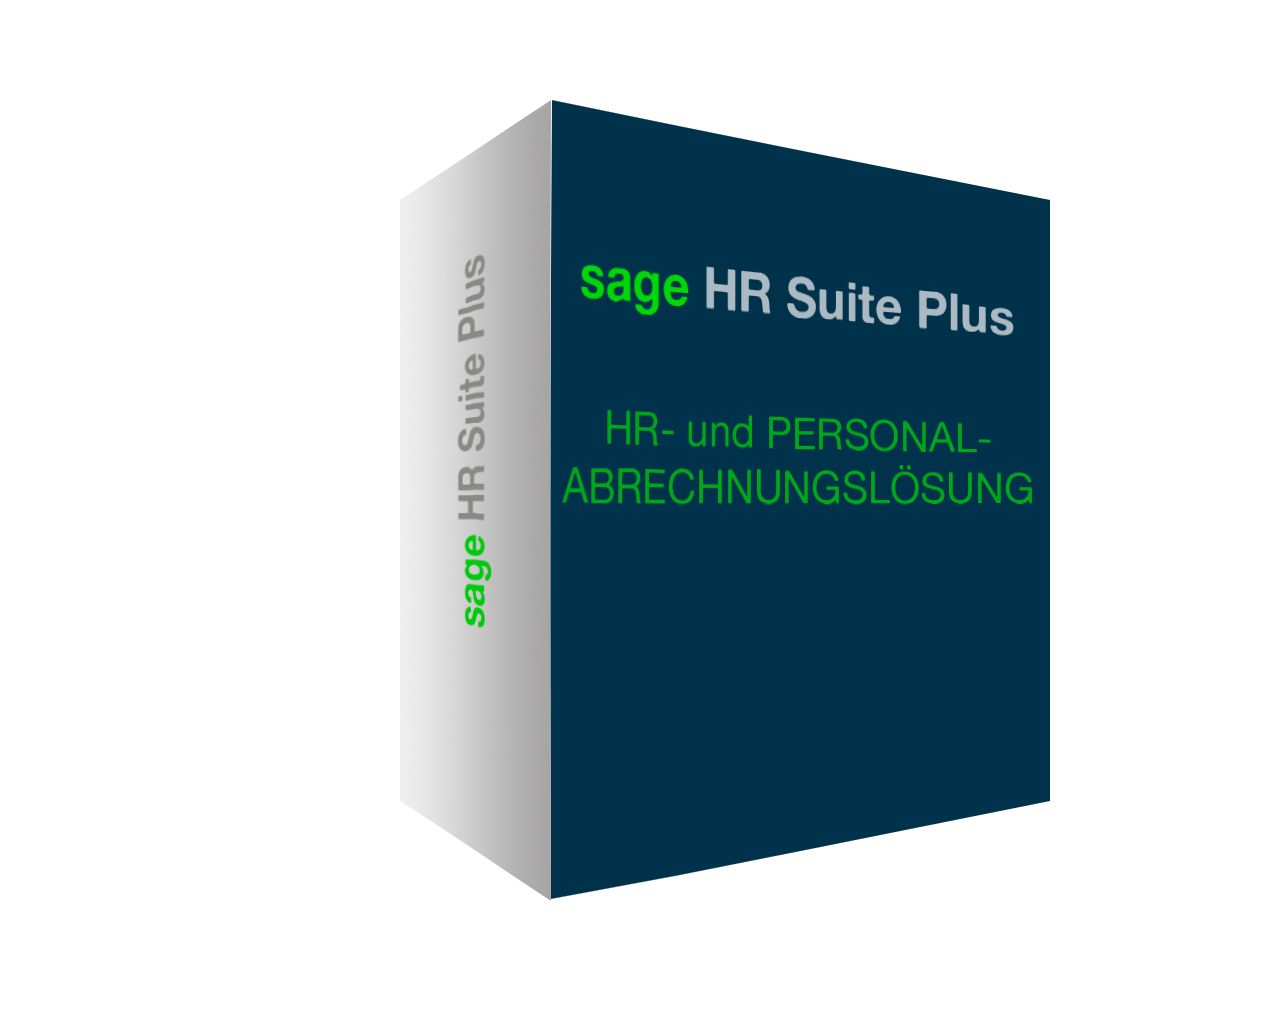 brainsolution Software AG - Sage HR Suite Plus